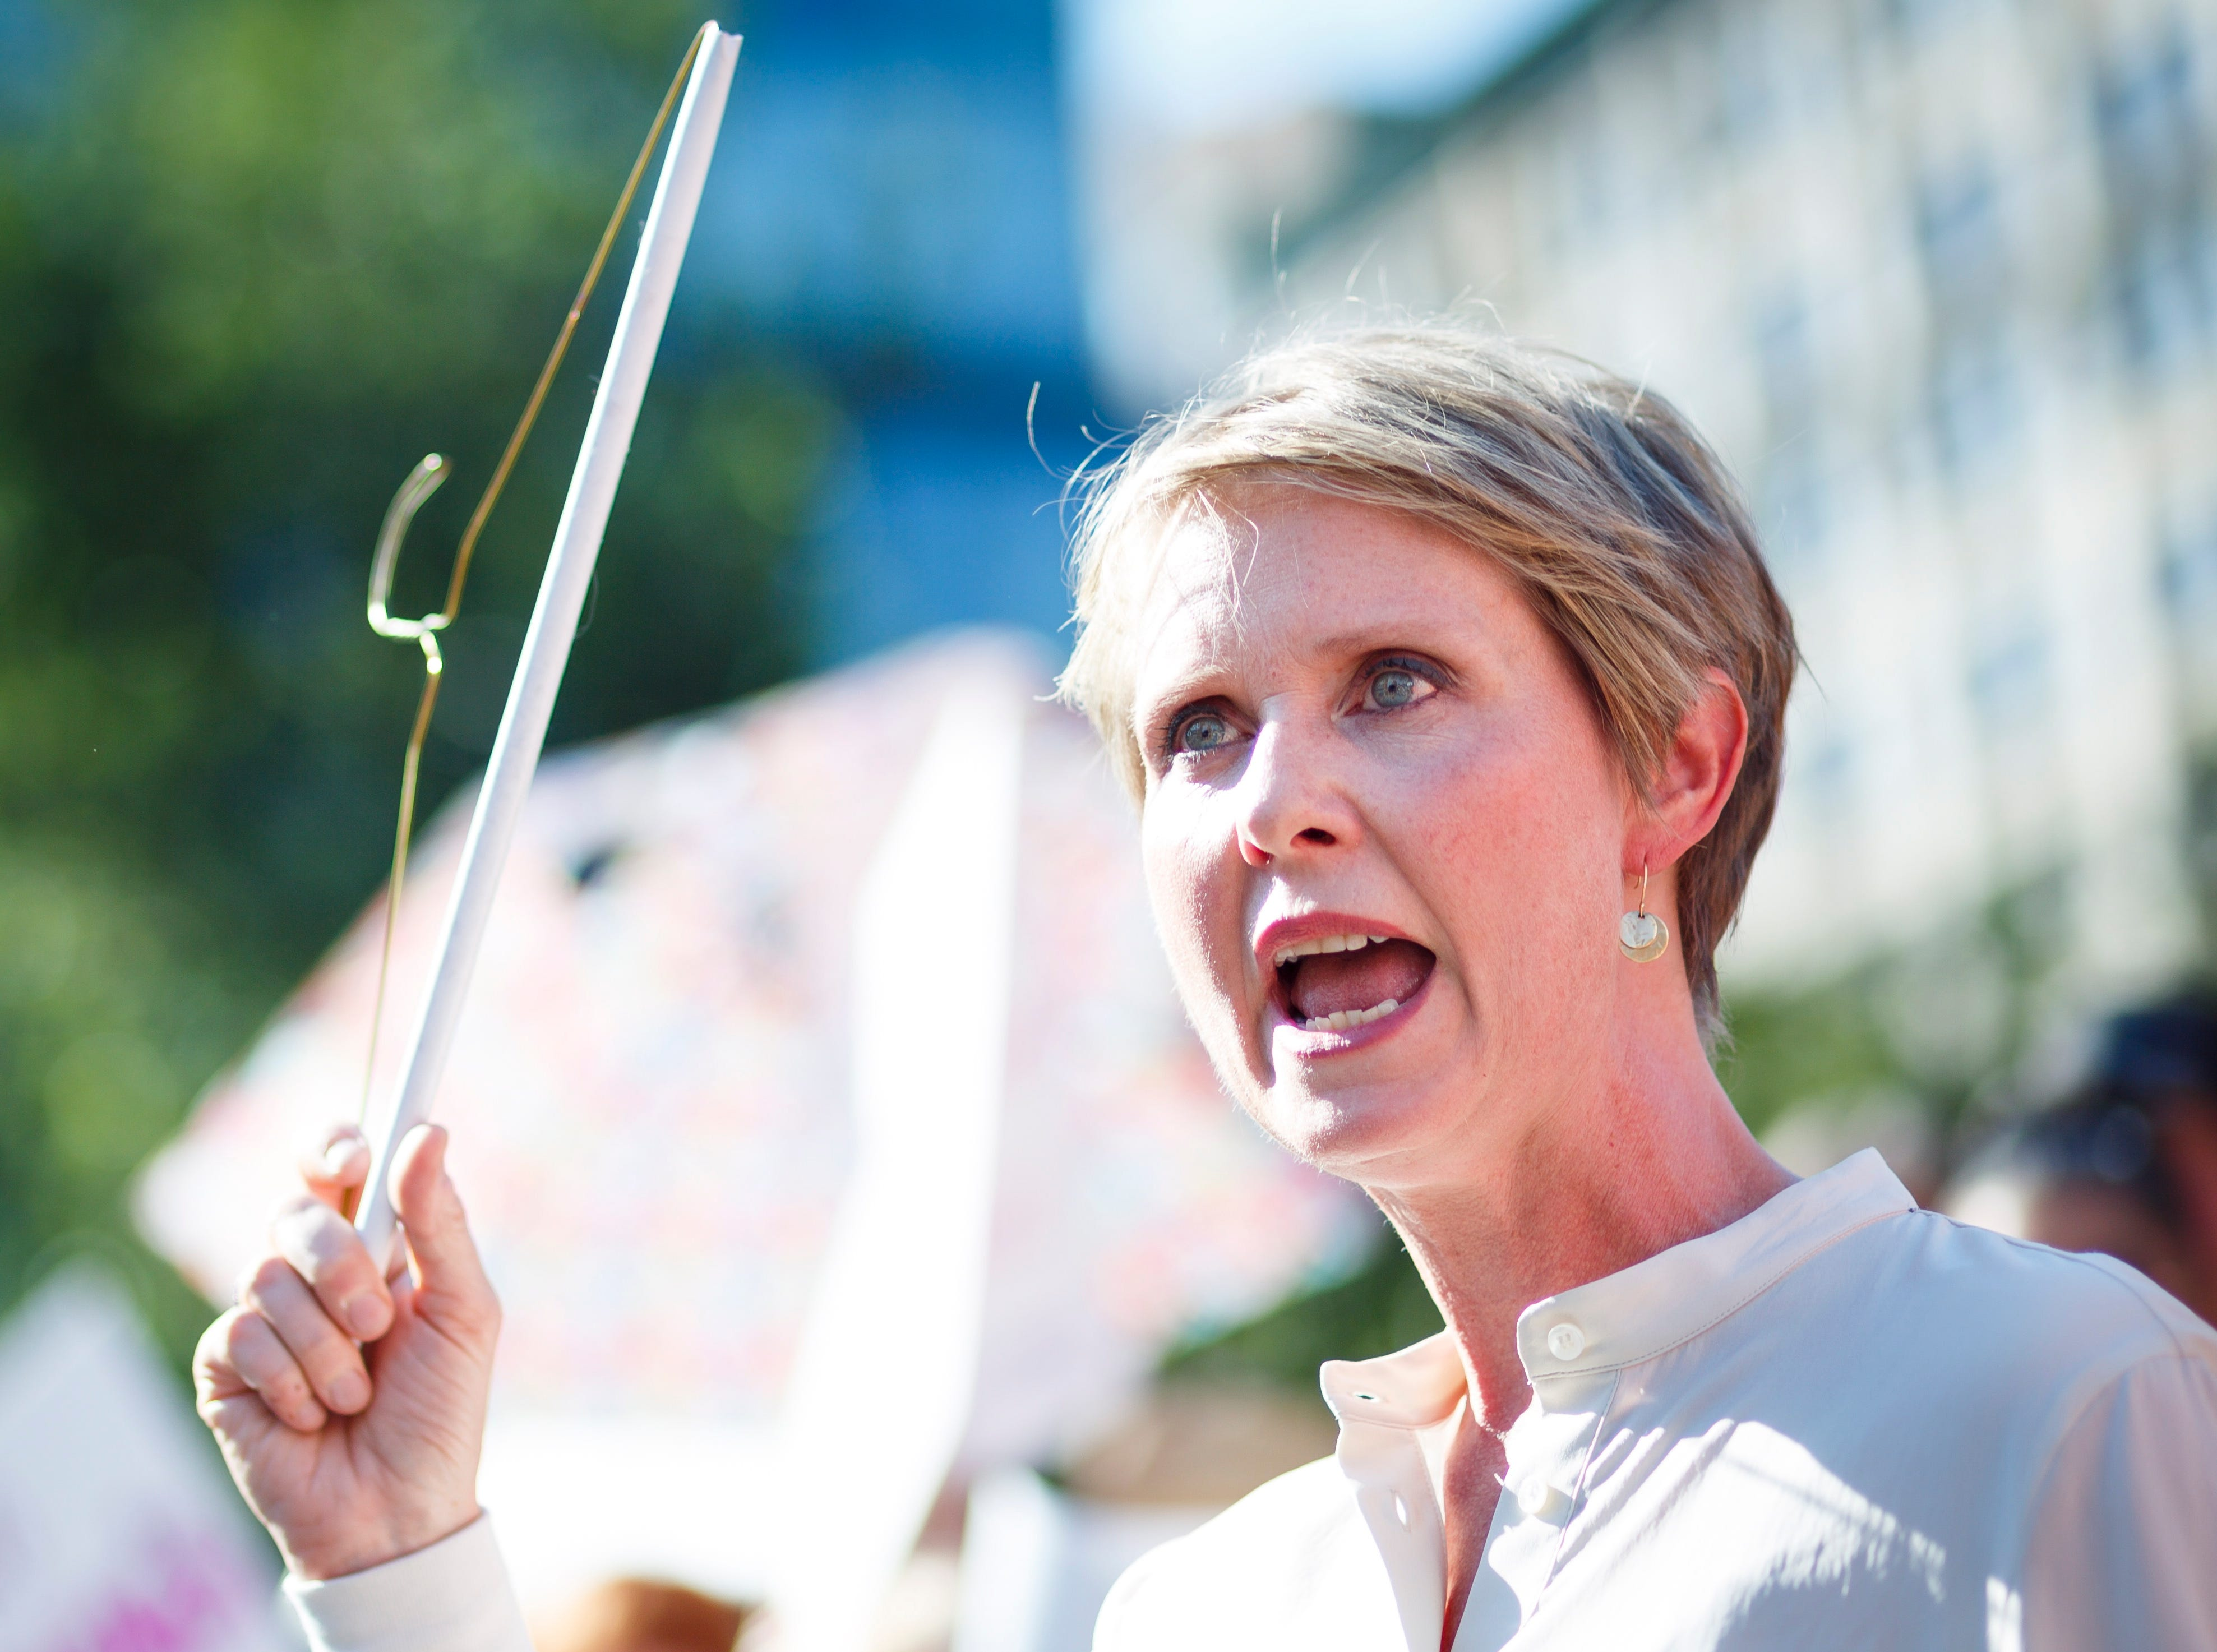 """""""Sex And The City"""" star Cynthia Nixon threw her hat into the ring of the New York governor's race in 2018. She was endorsed by co-stars Sarah Jessica Parker and Kim Cattrall."""